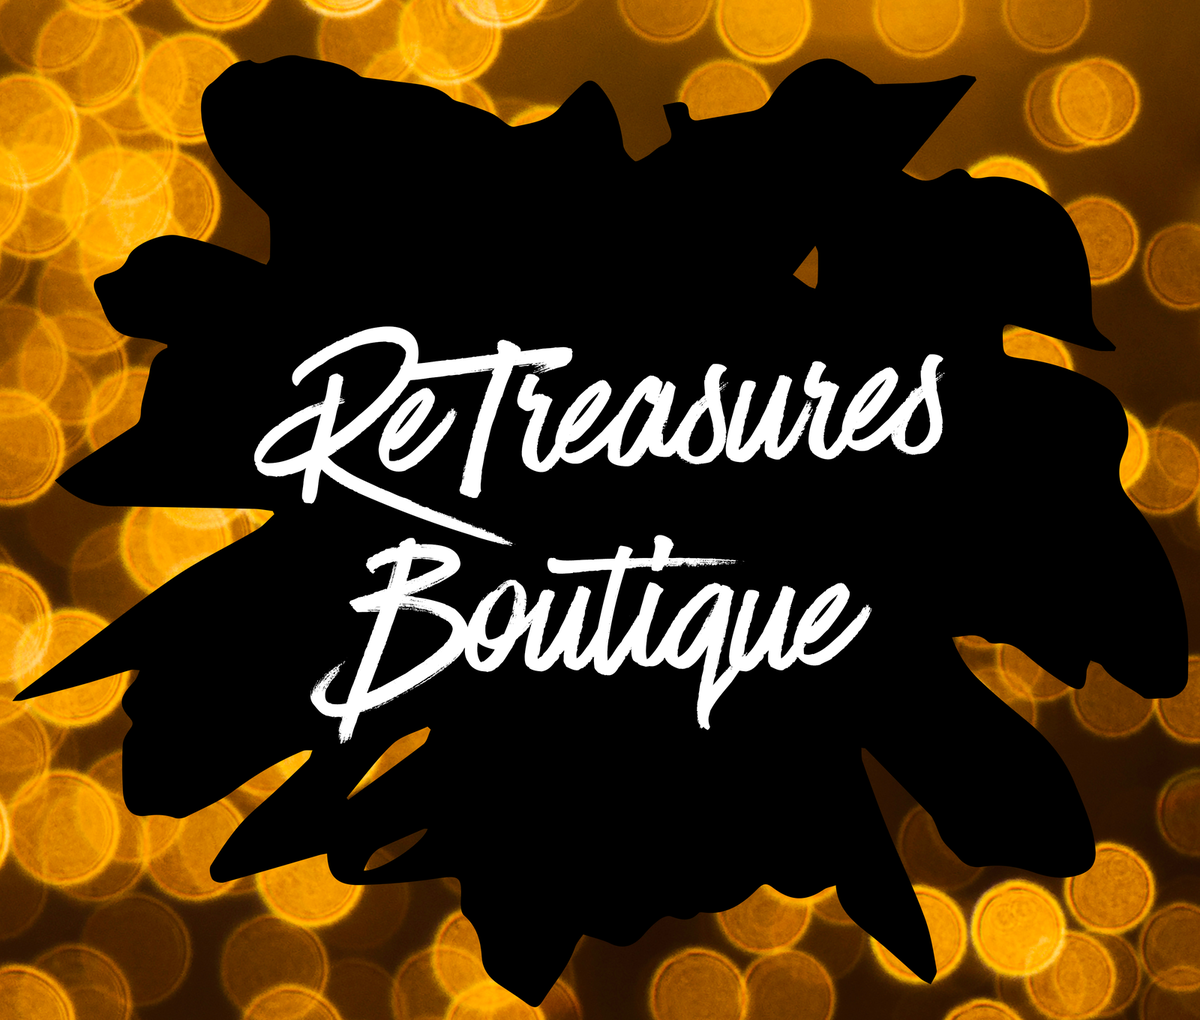 Evan's Re-Treasures Boutique